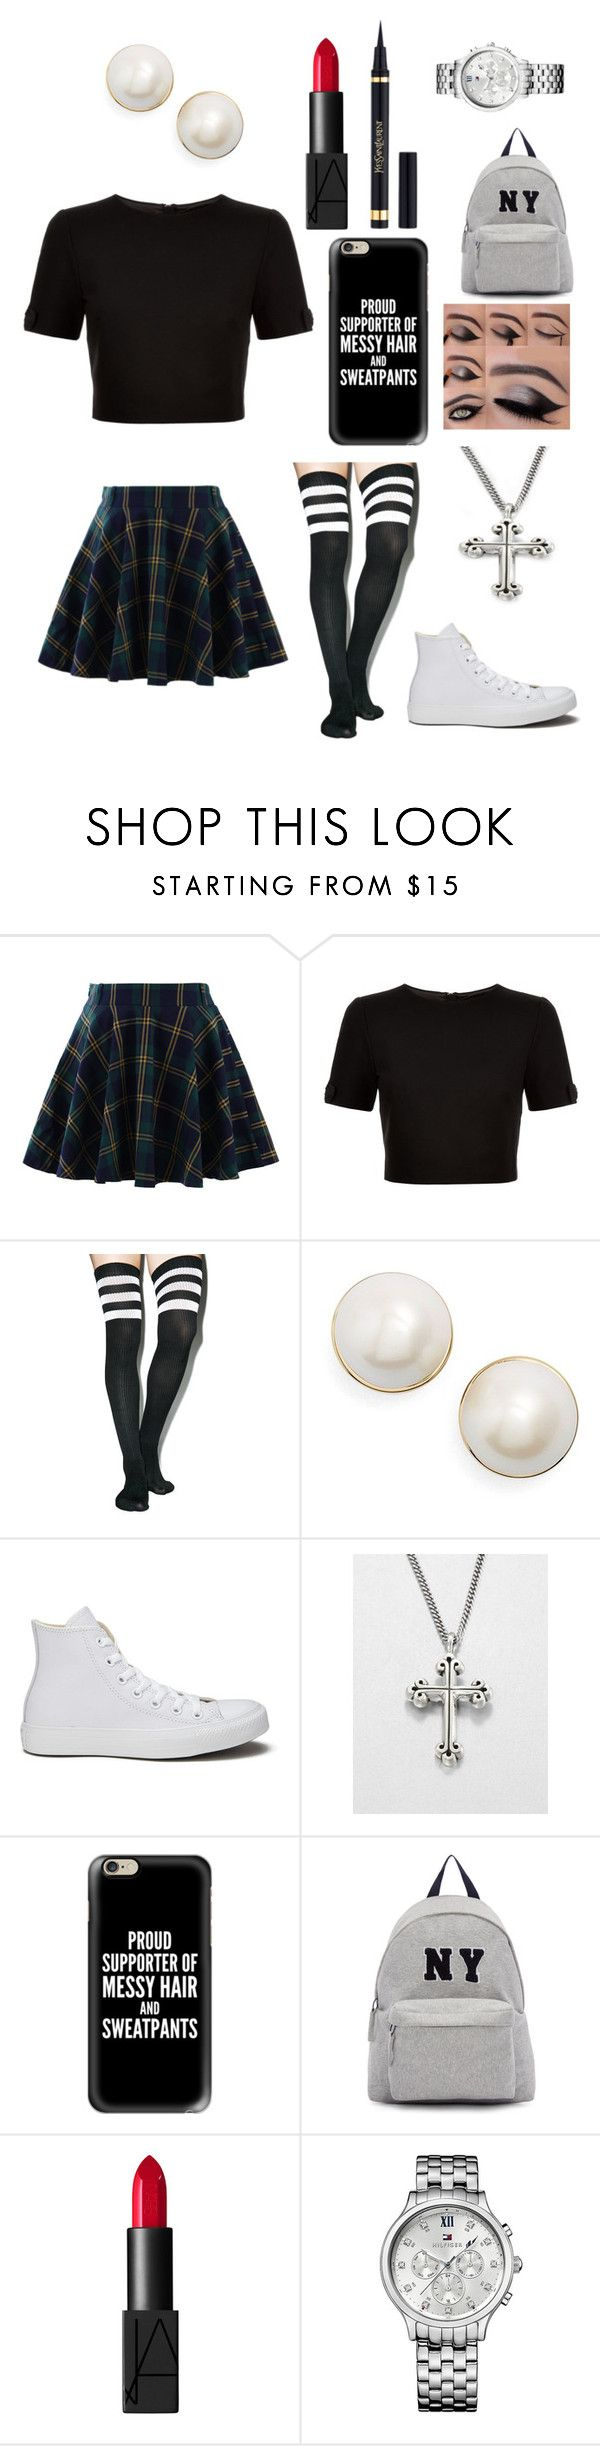 """""""Private school"""" by malrocks2003 ❤ liked on Polyvore featuring Chicwish, Ted Baker, Leg Avenue, Kate Spade, Converse, King Baby Studio, Casetify, Joshua's, NARS Cosmetics and Tommy Hilfiger"""